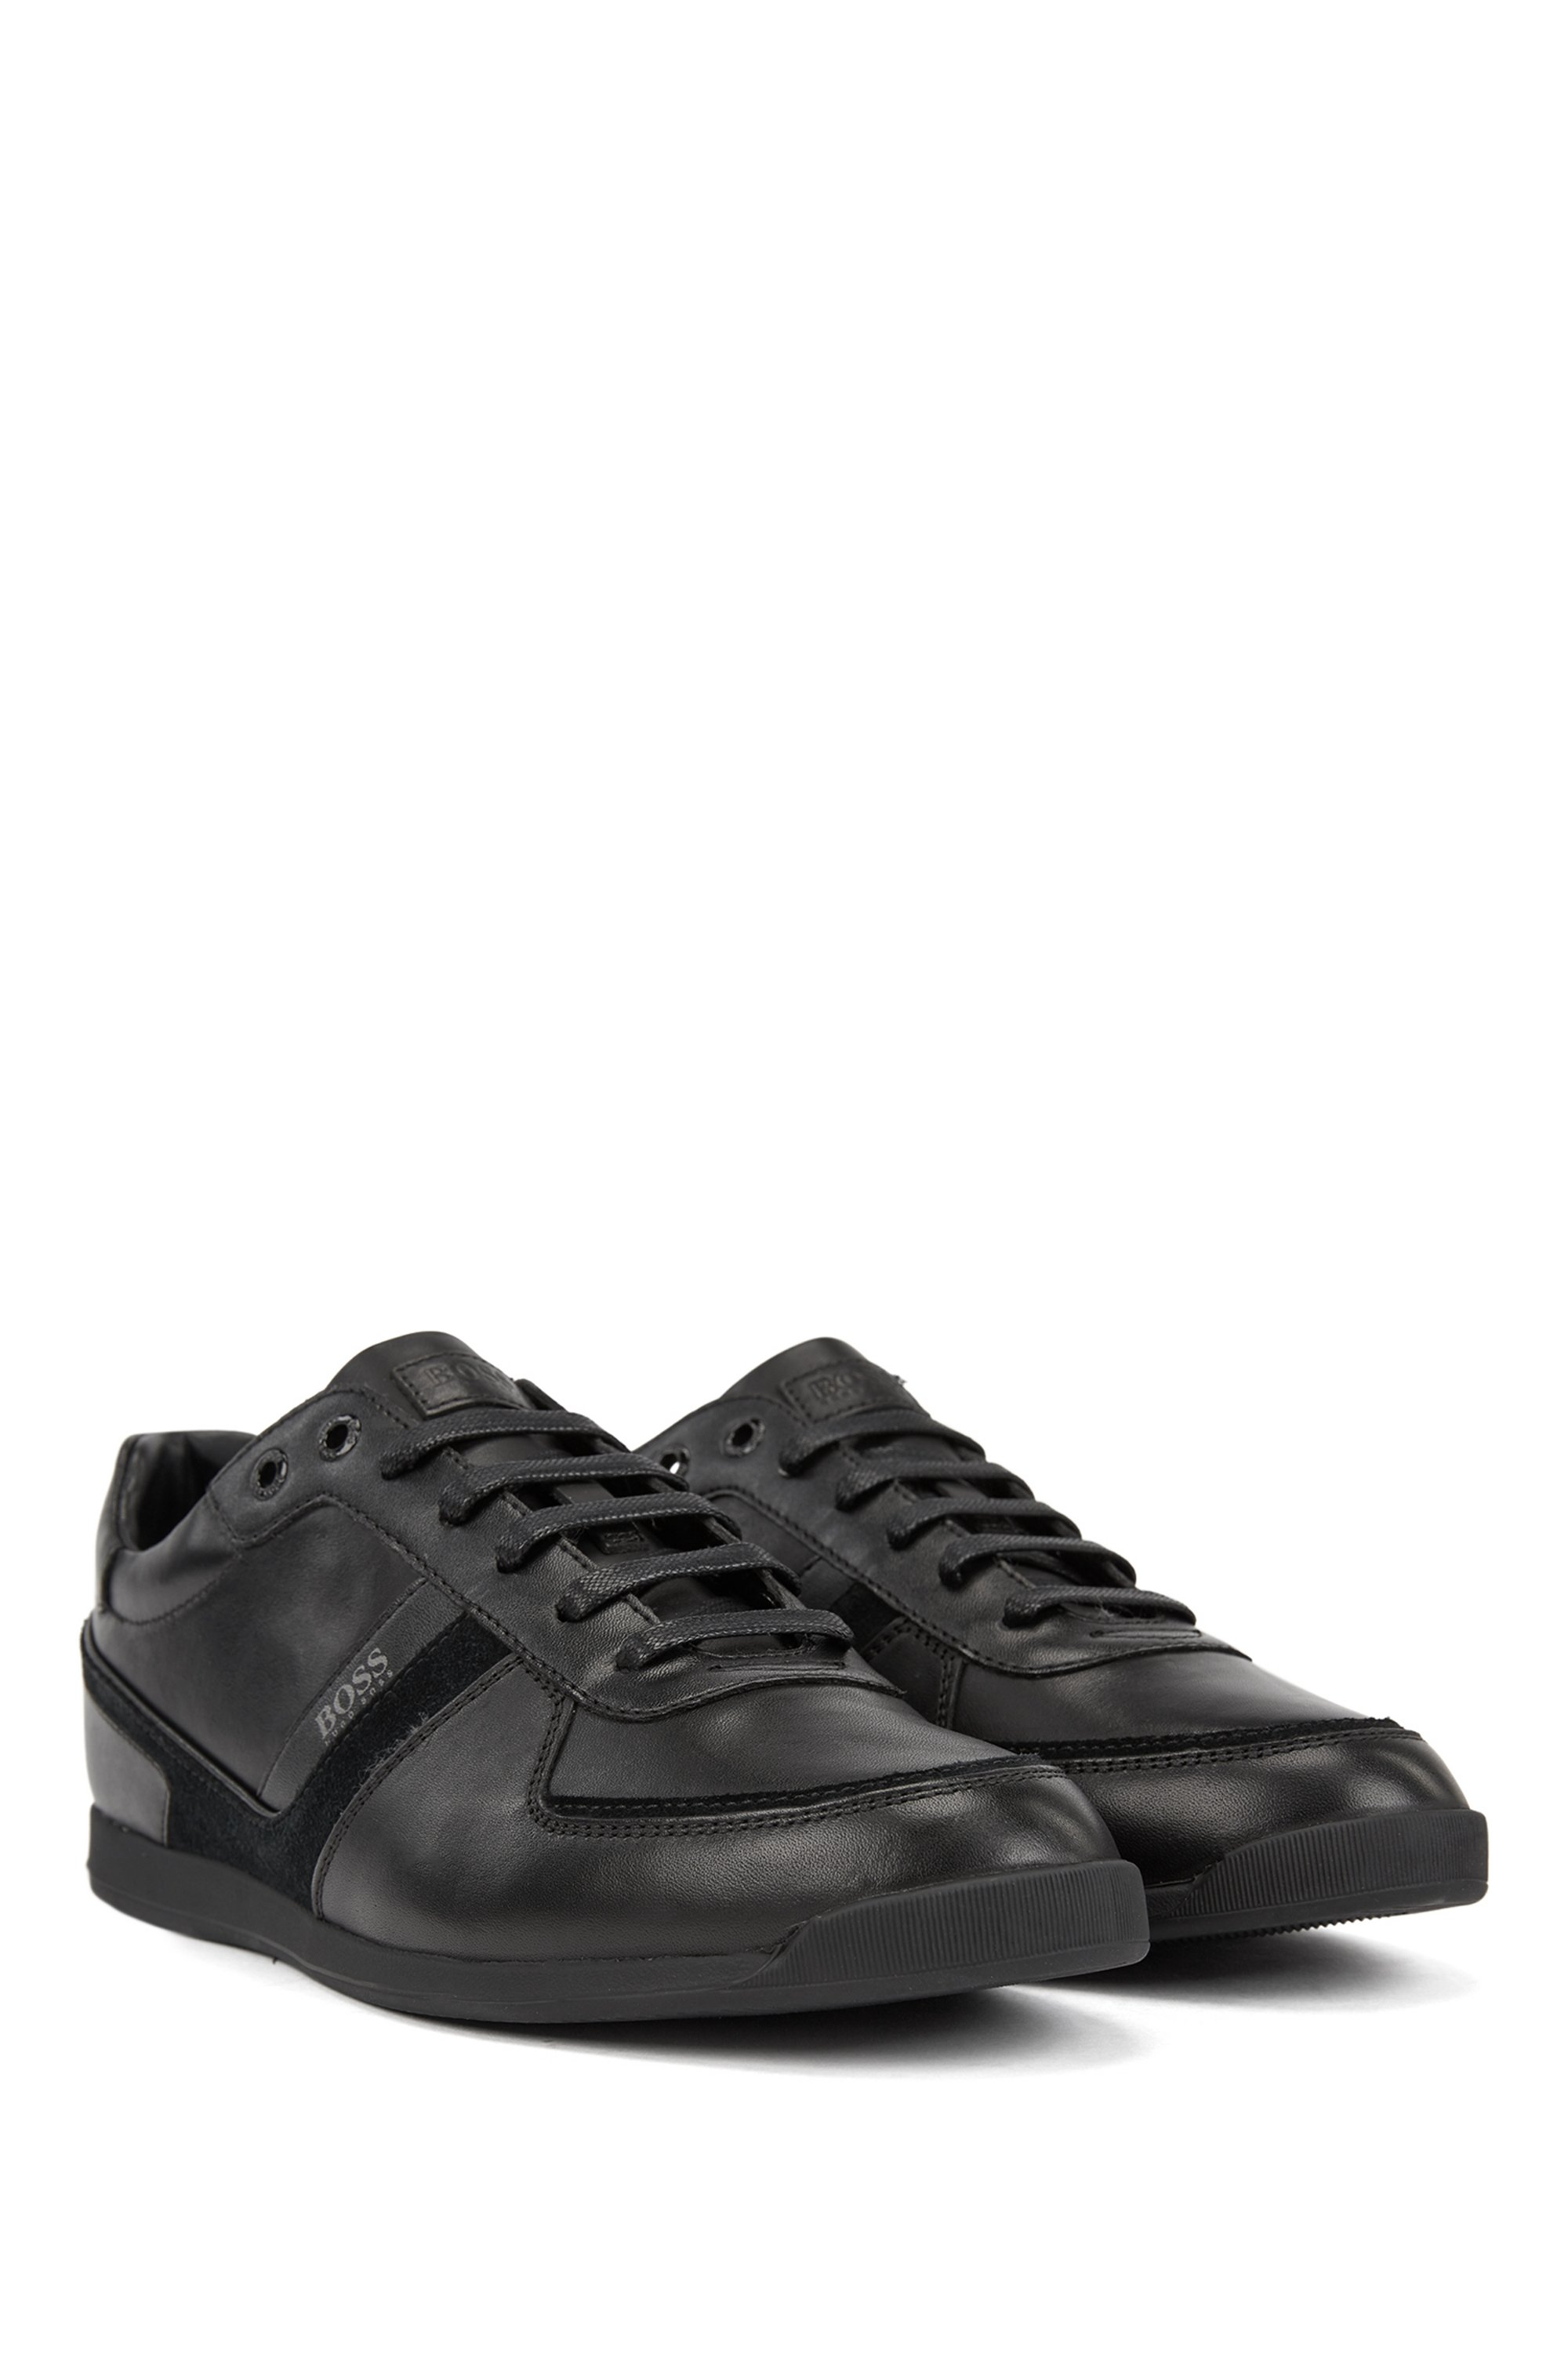 Low-profile leather trainers with bamboo-charcoal lining